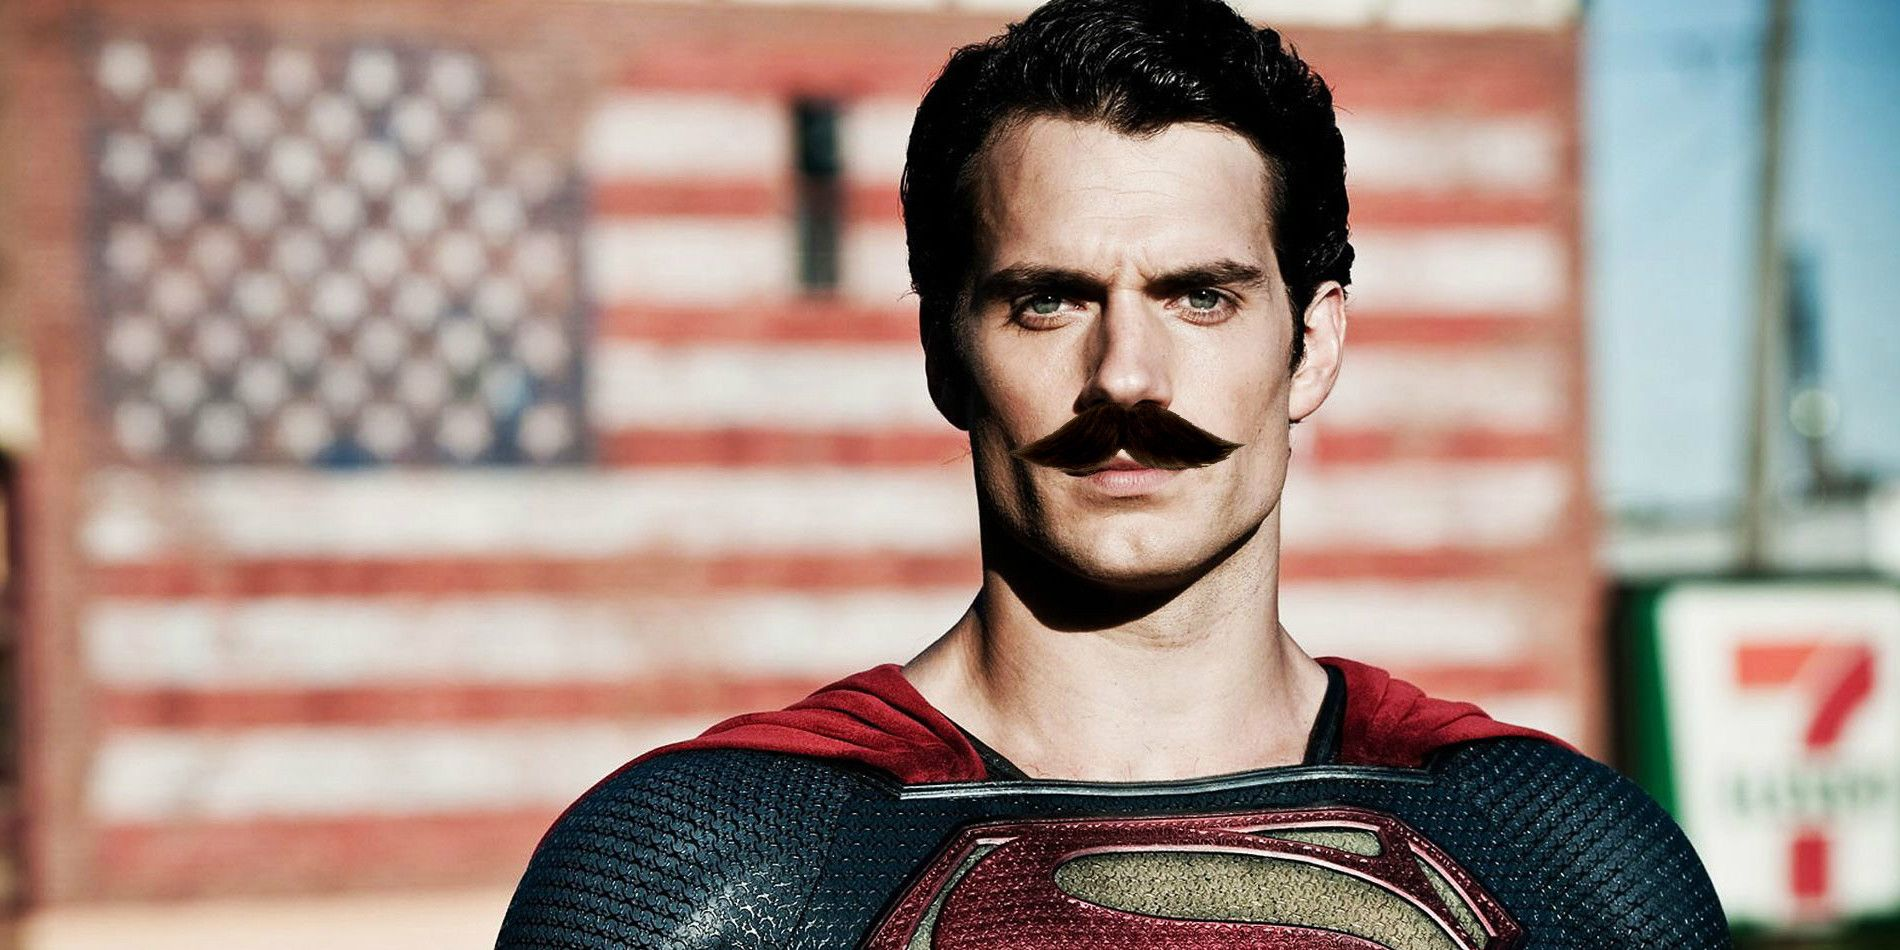 Justice League: New BTS Photo Gives Best Look At Cavill's Mustache